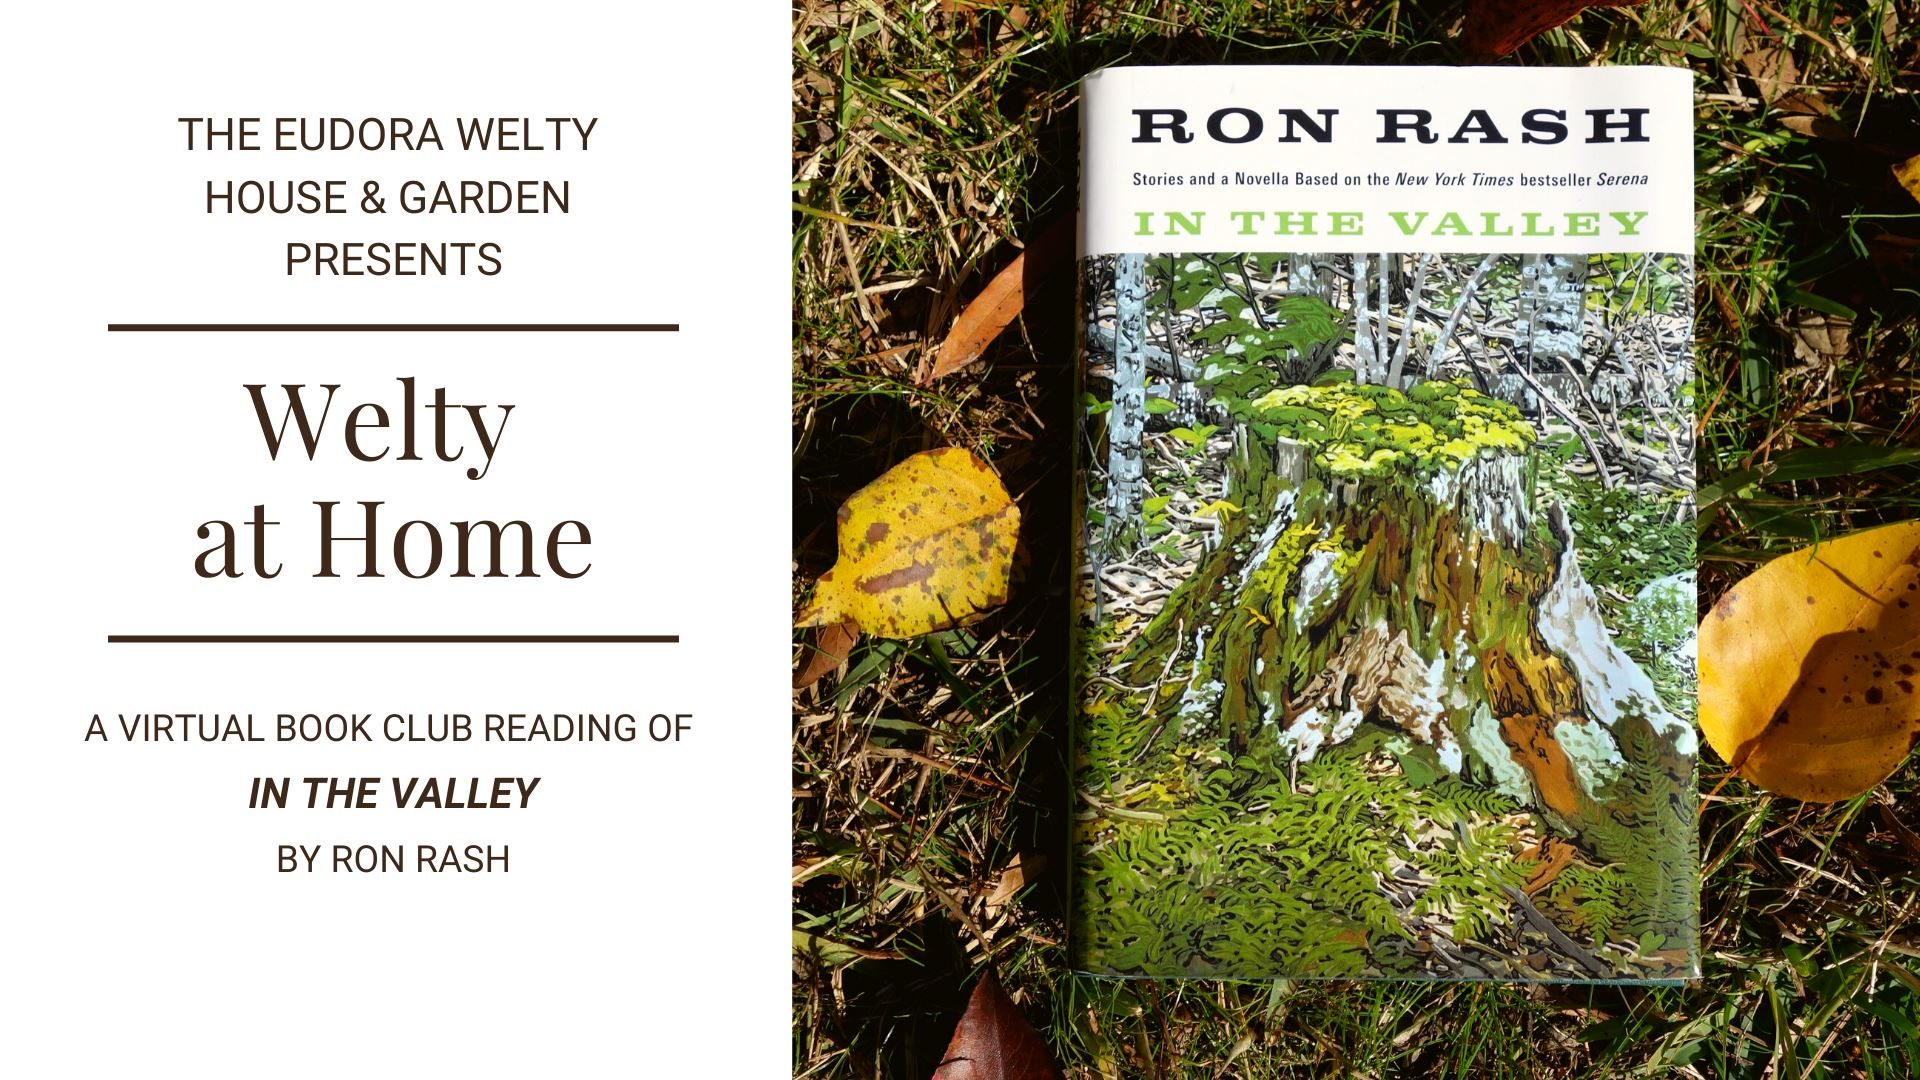 Image of Ron Rash's book In the Valley